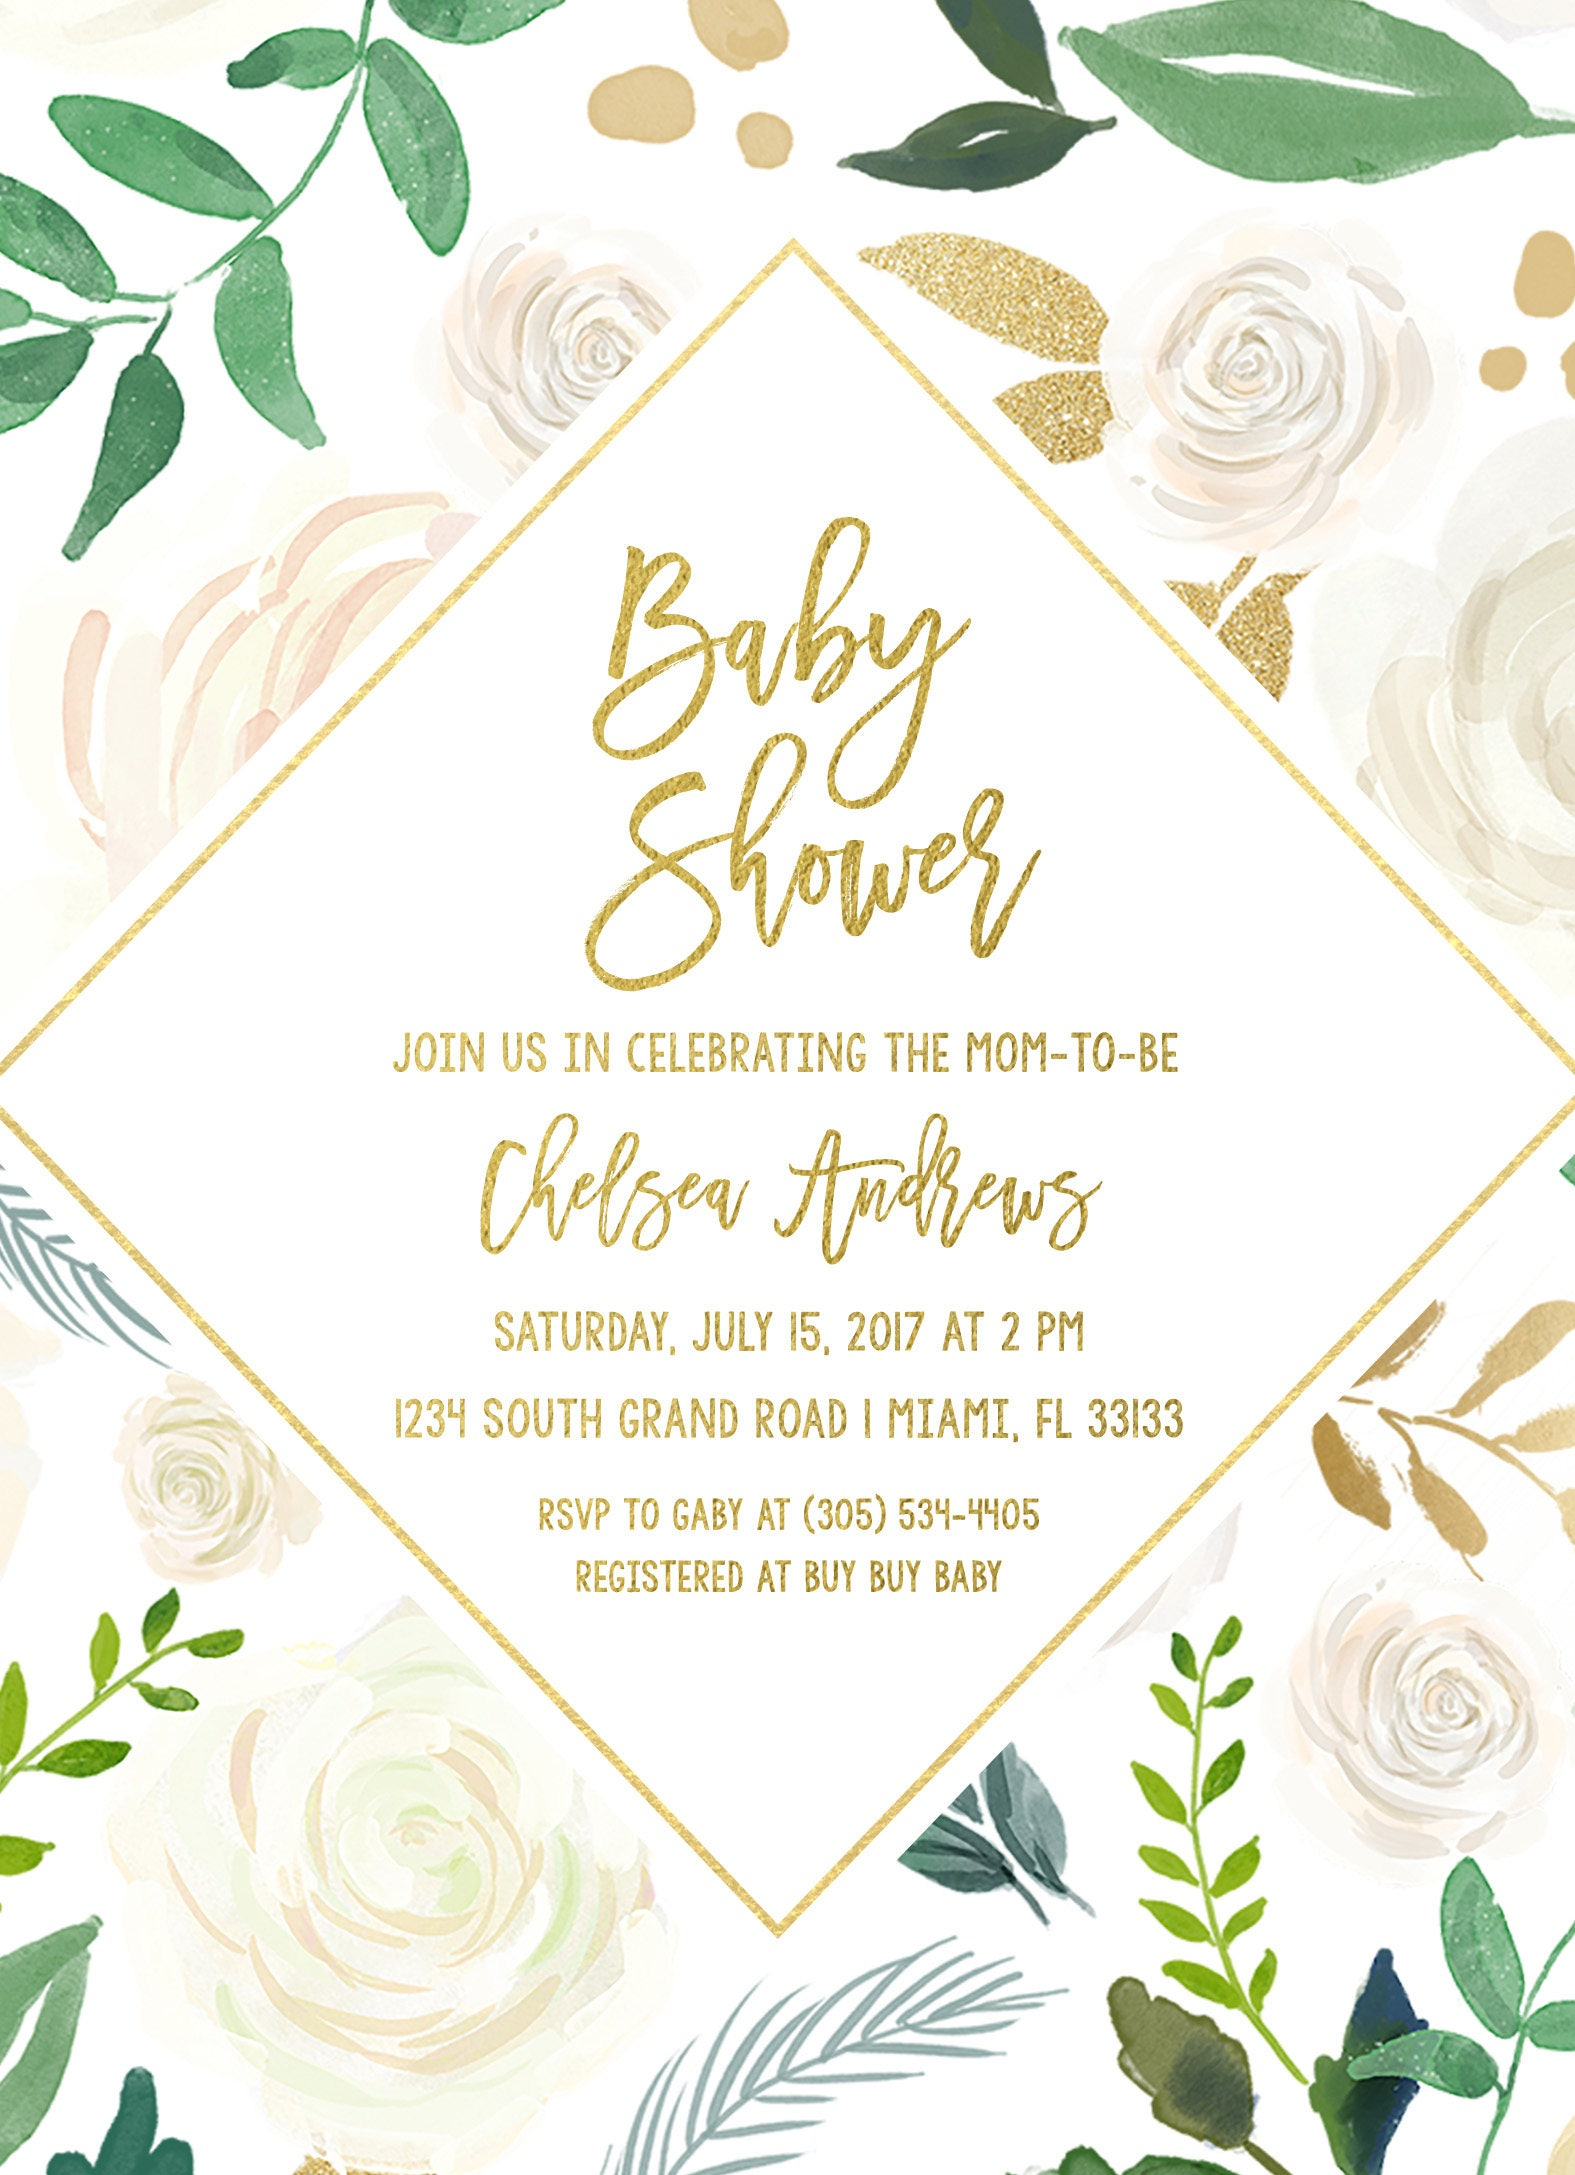 Baby shower brunch invitation gender neutral baby shower invitation baby shower brunch invitation gender neutral baby shower invitation rustic baby shower invitation garden green baby shower invite filmwisefo Image collections